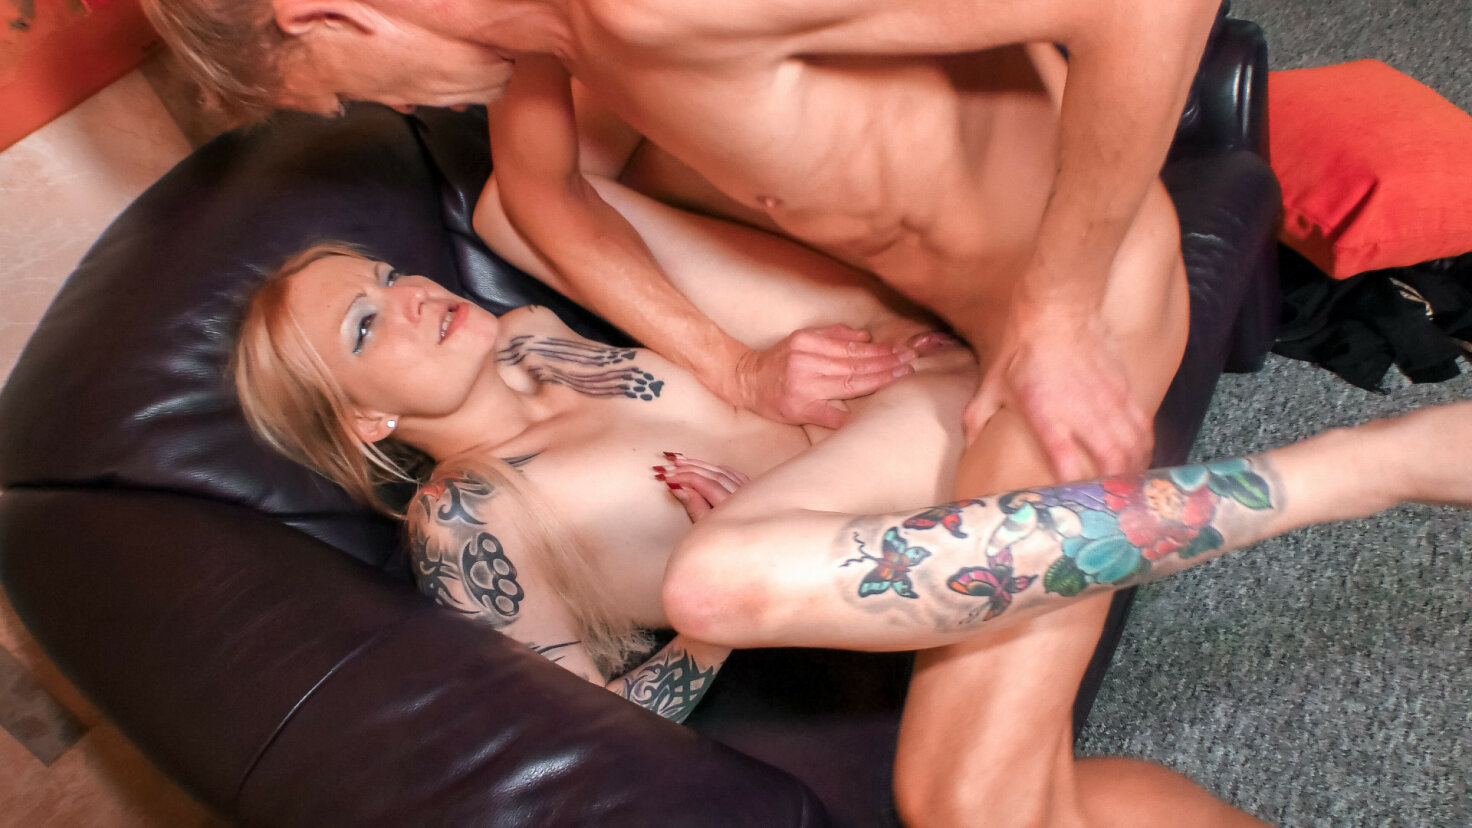 Tattooed German blonde in her 40s sucks a cock outdoors, gets fingered